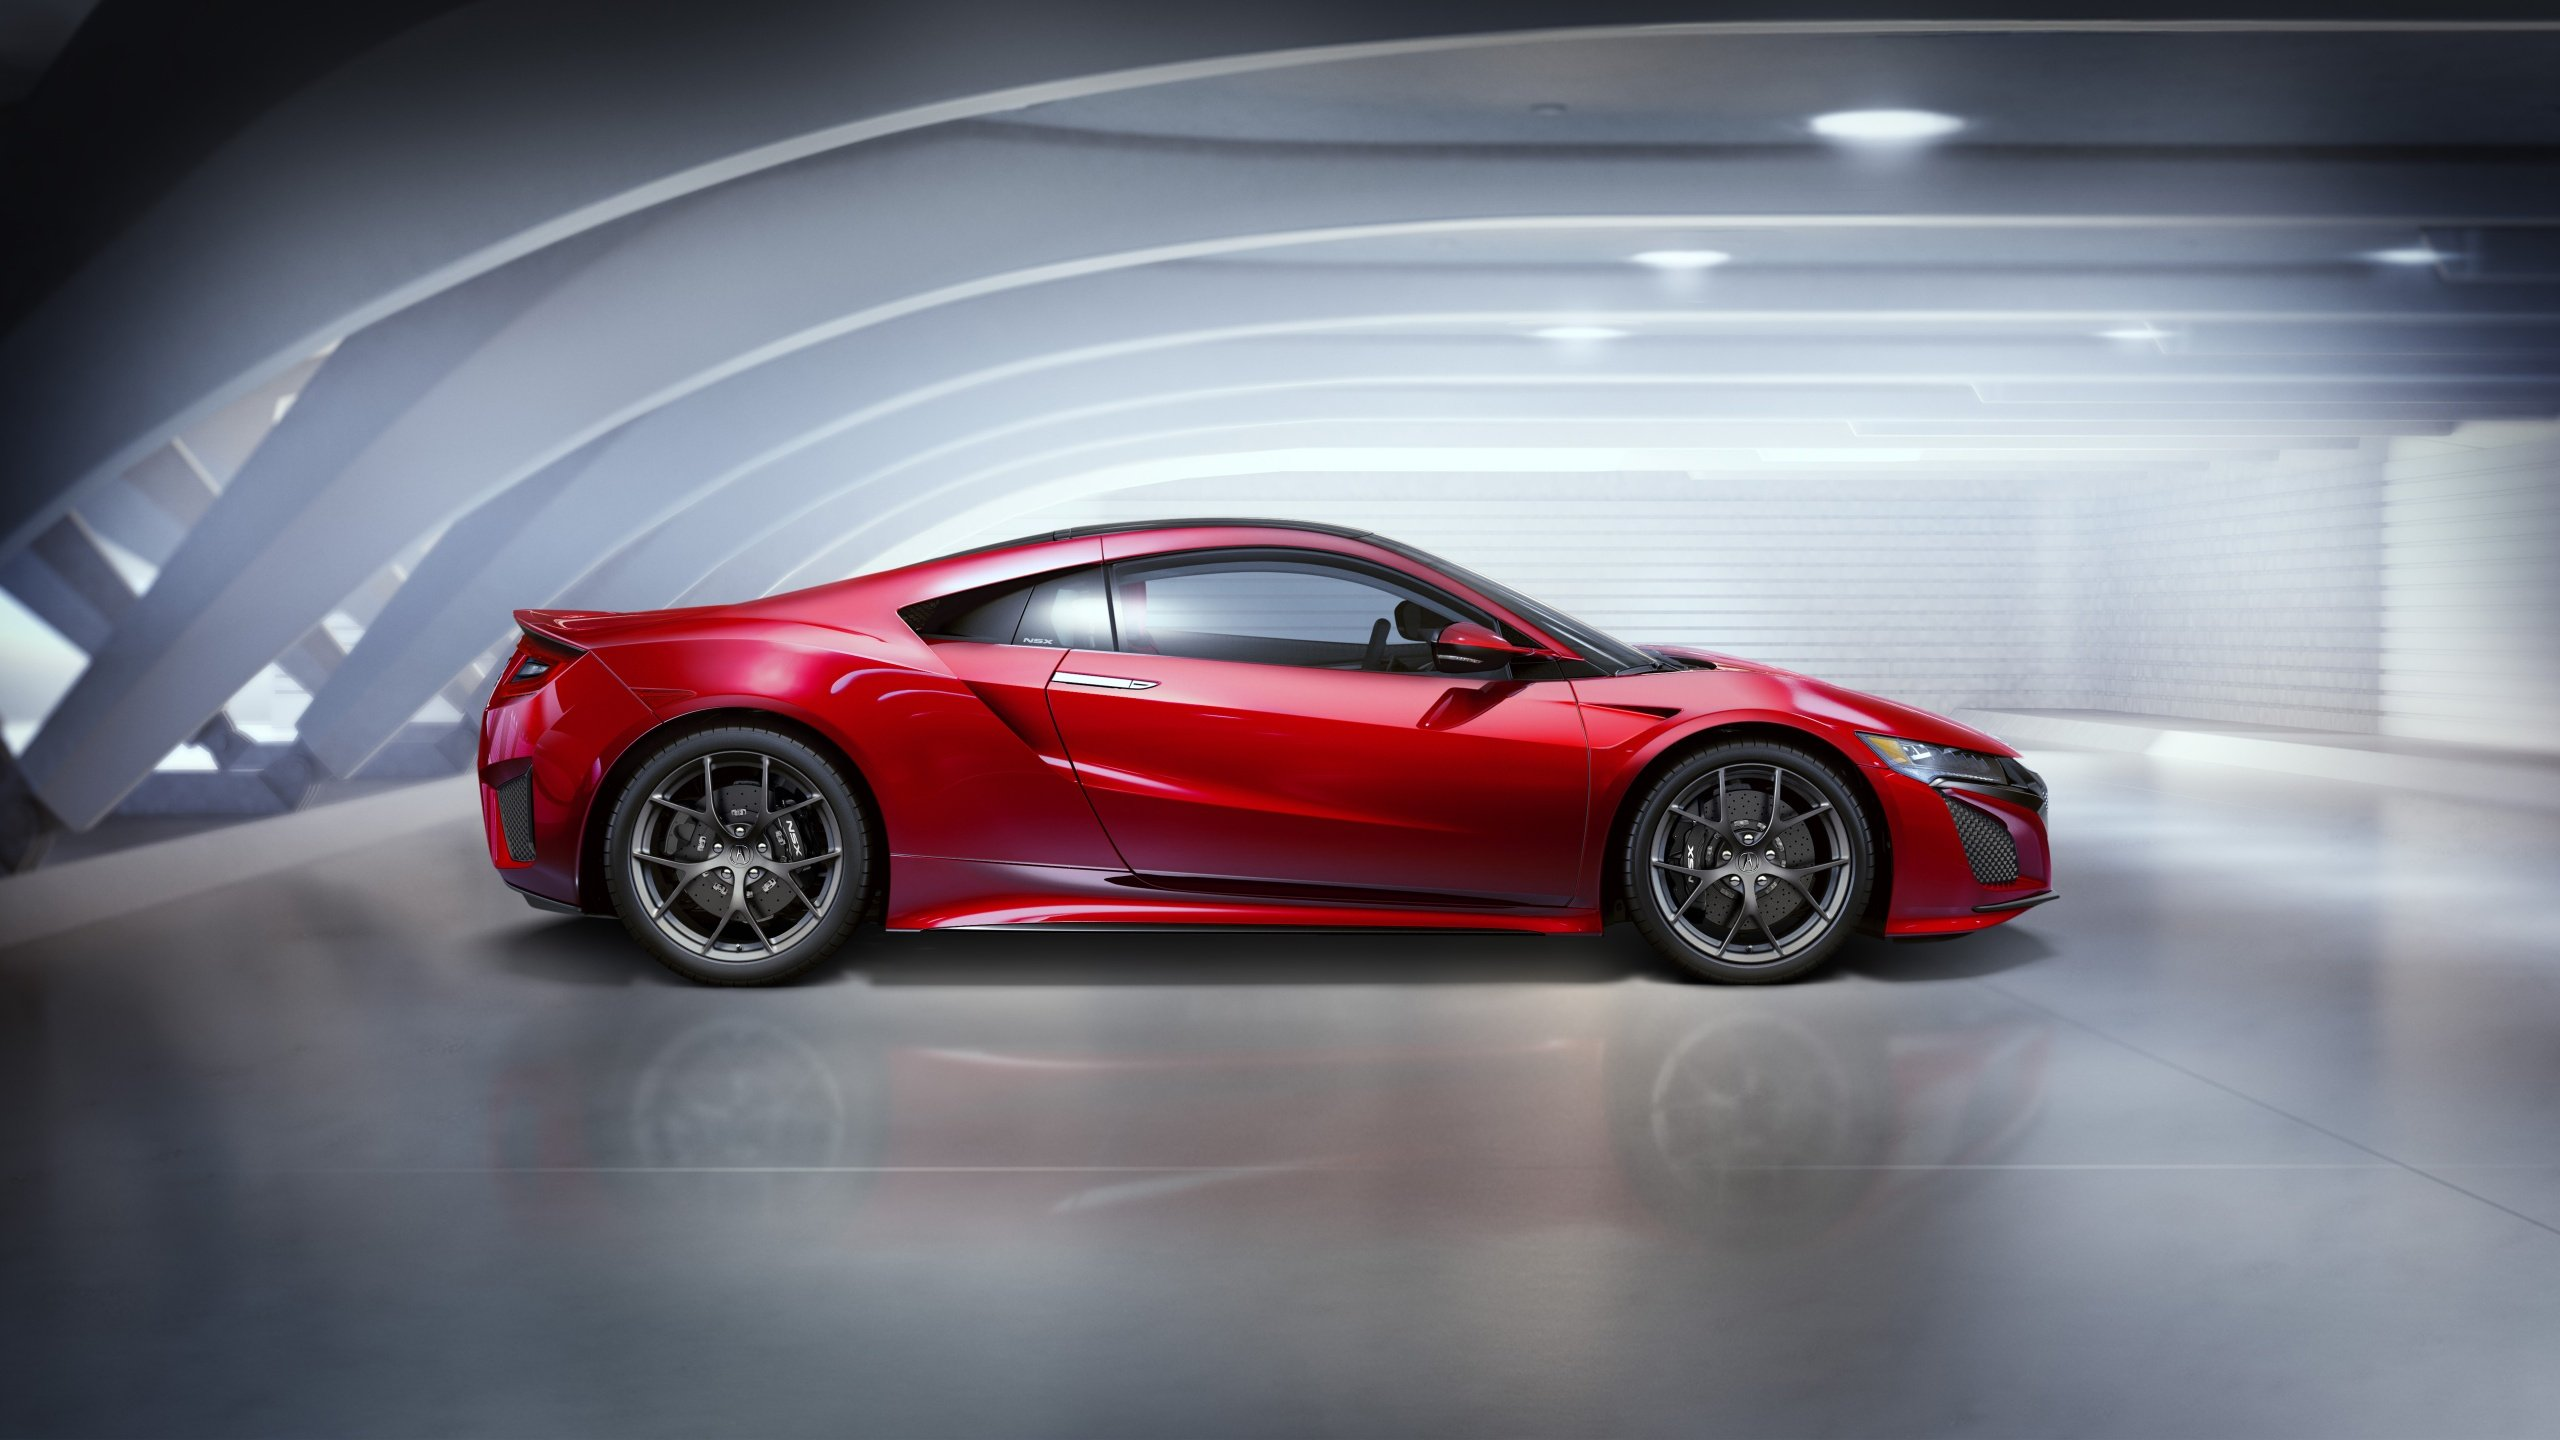 Acura NSX 2016 4K 5K Wallpaper | HD Car Wallpapers